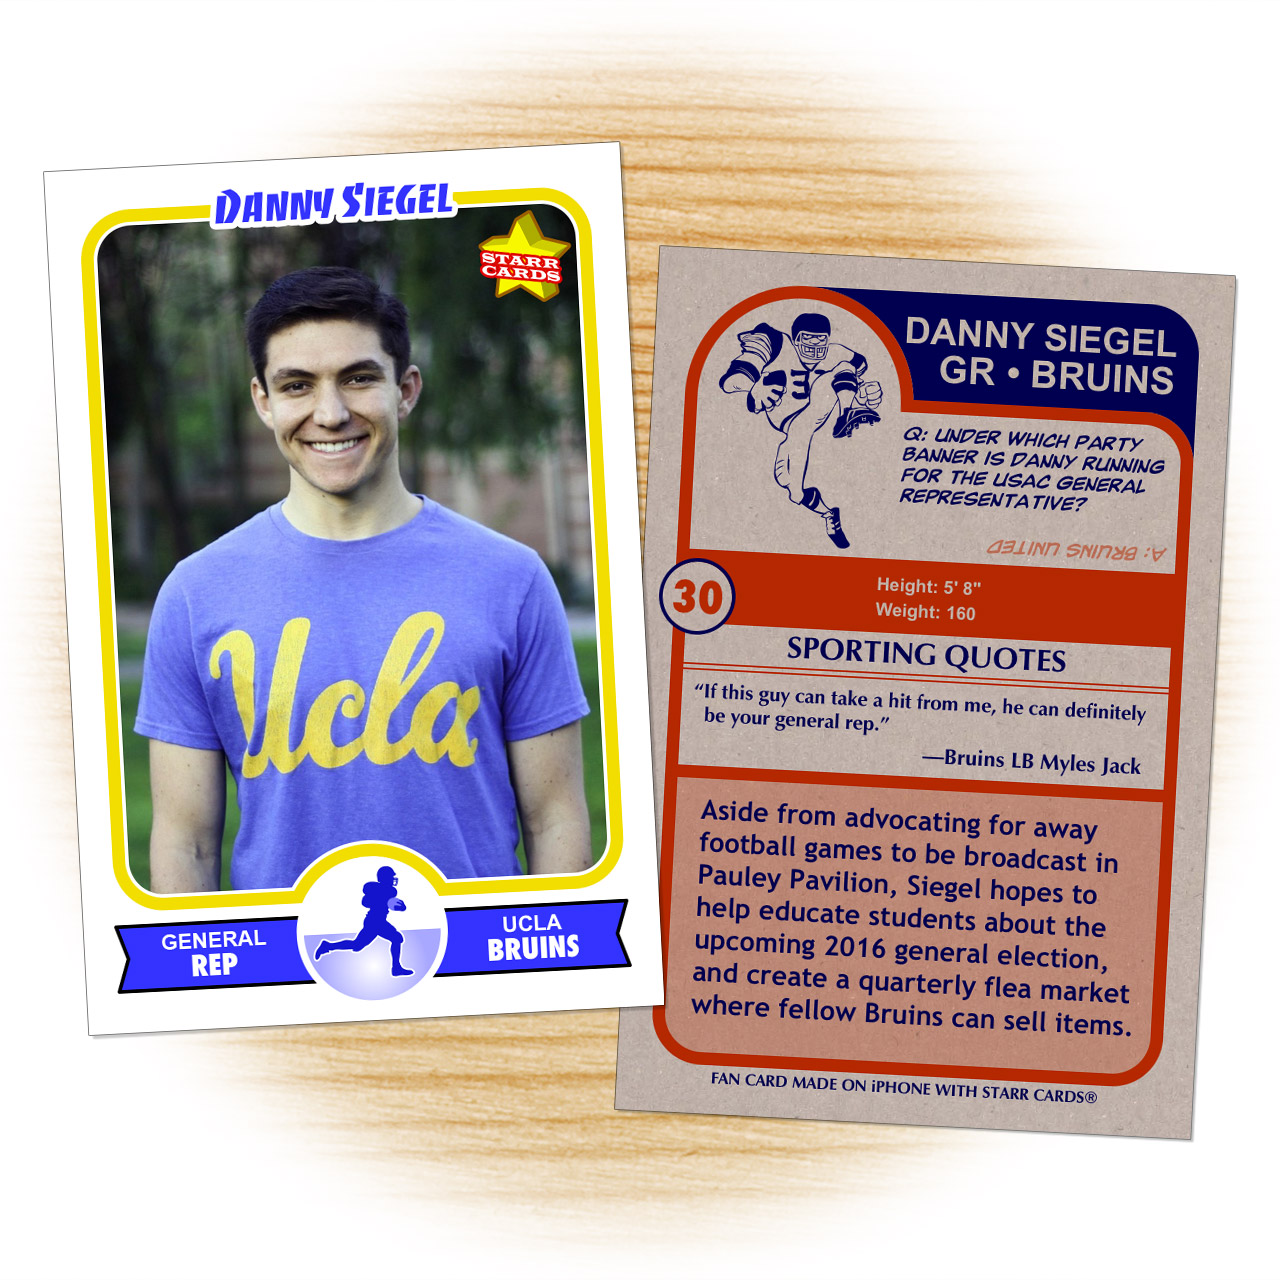 Danny Siegel football card with Myles Jack endorsement